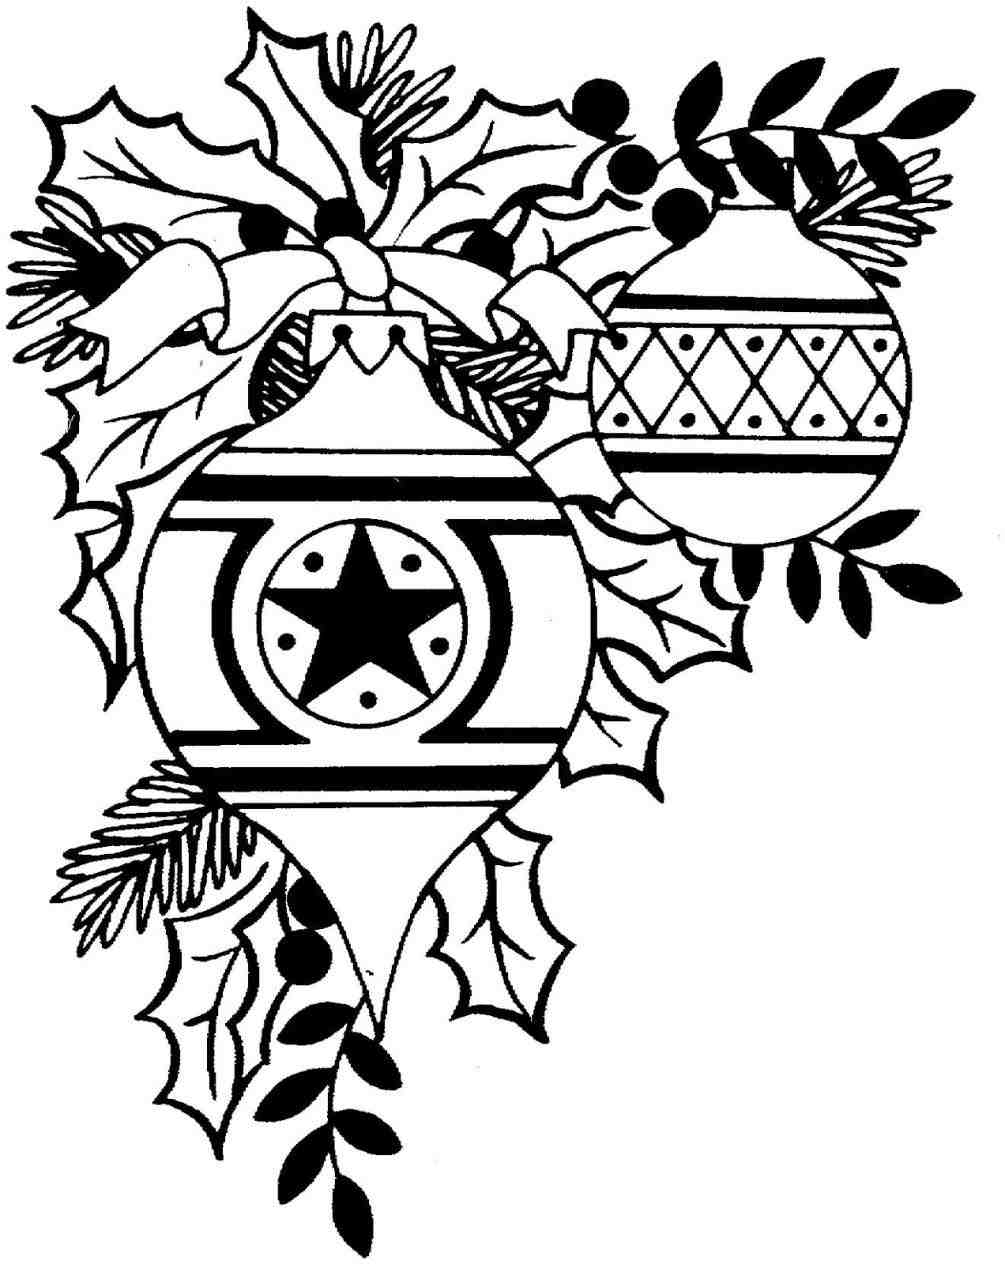 1005x1264 Christmas Ornament Clipart Black And White Cheminee.website